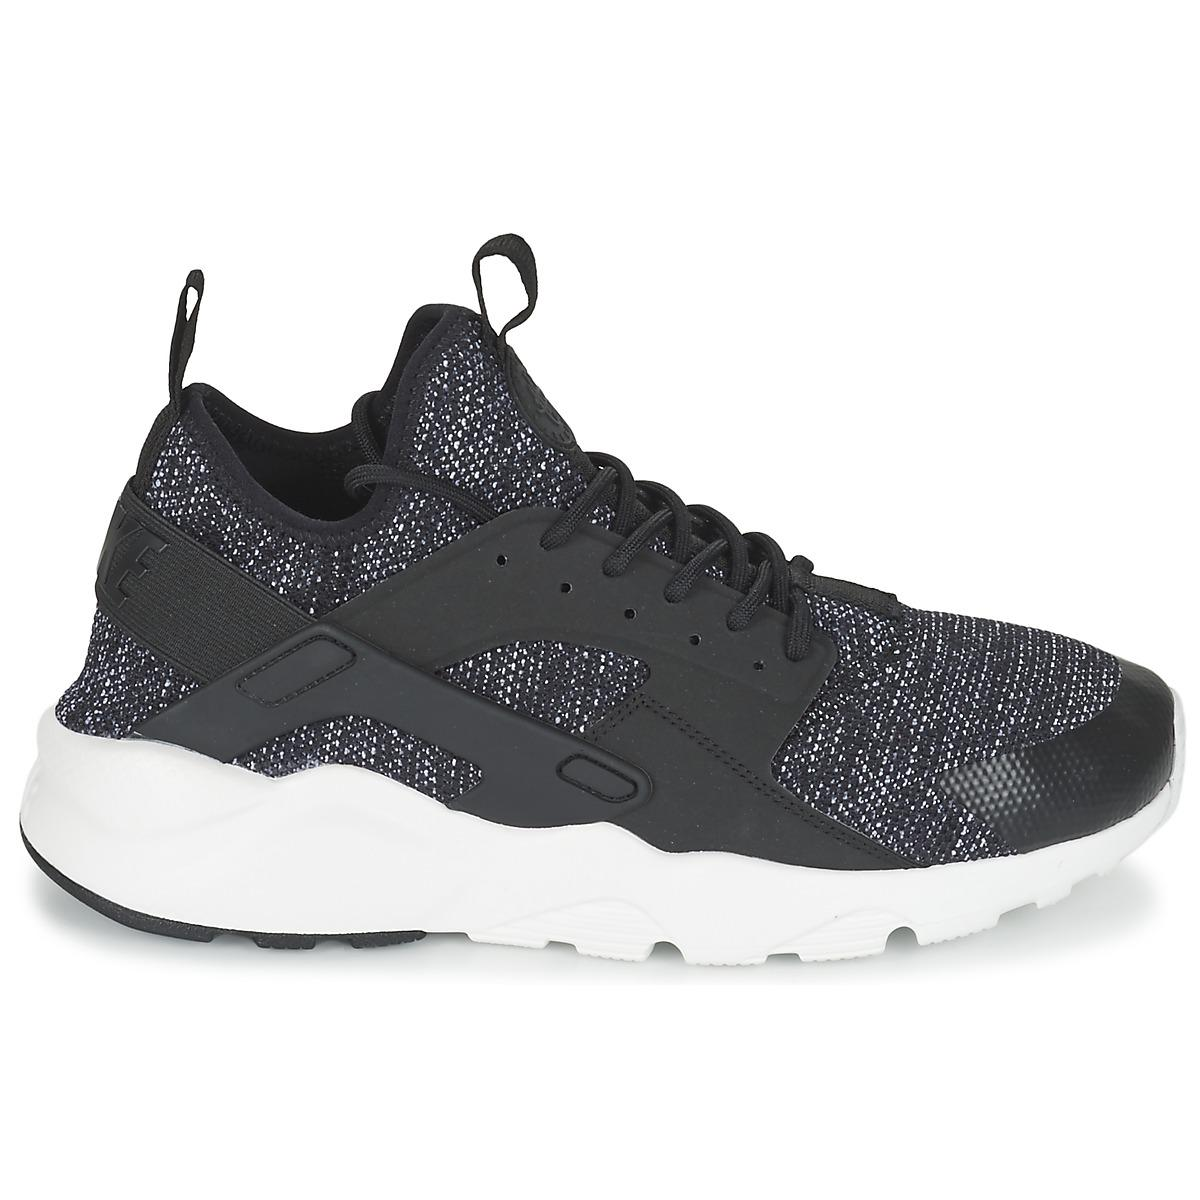 Nike Synthetic Air Huarache Run Ultra Br Shoes (trainers) in Black for Men